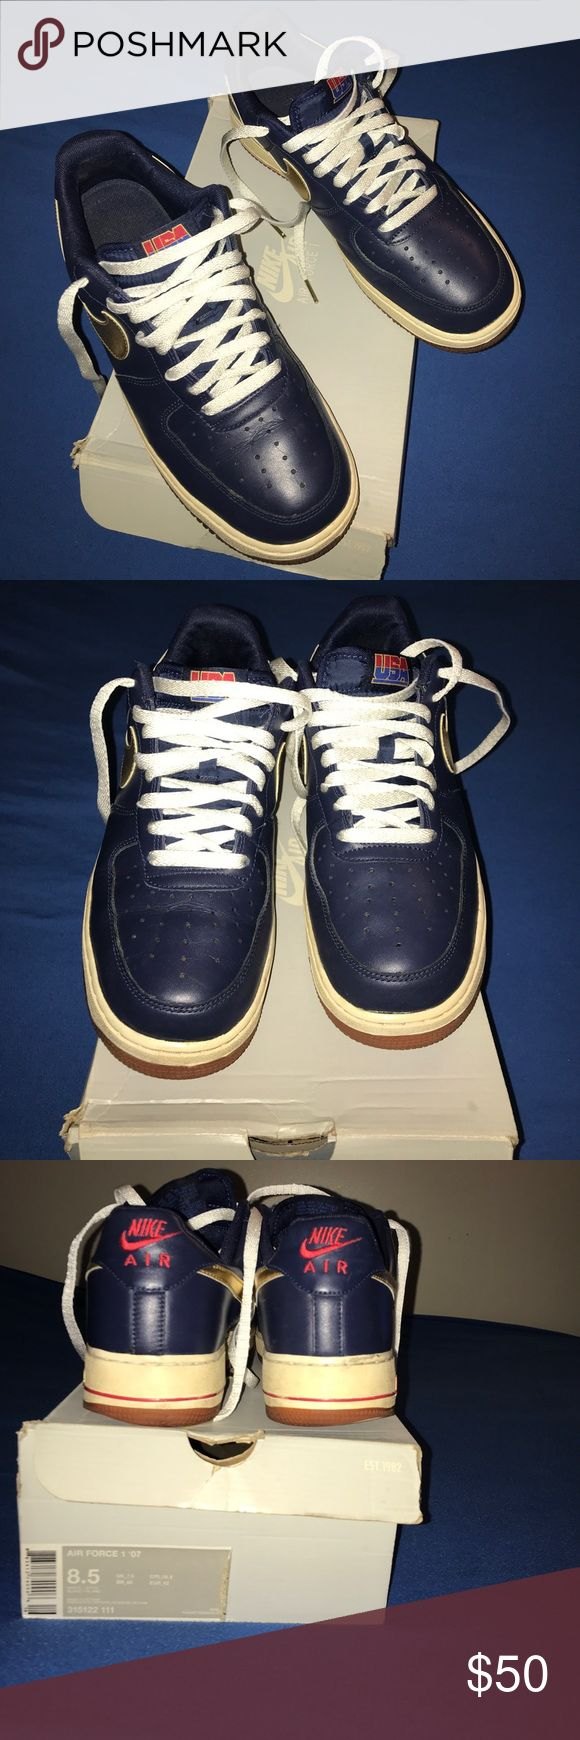 Nike Olympic Air Force ones Classic Olympic uptown's. Comes with box but not original.Fair condition. White shoe laces with gold tassels. Navy blue/gold/red/white,Everything is in the pictures but before purchasing please ask questions. Thank you. Nike Shoes Sneakers